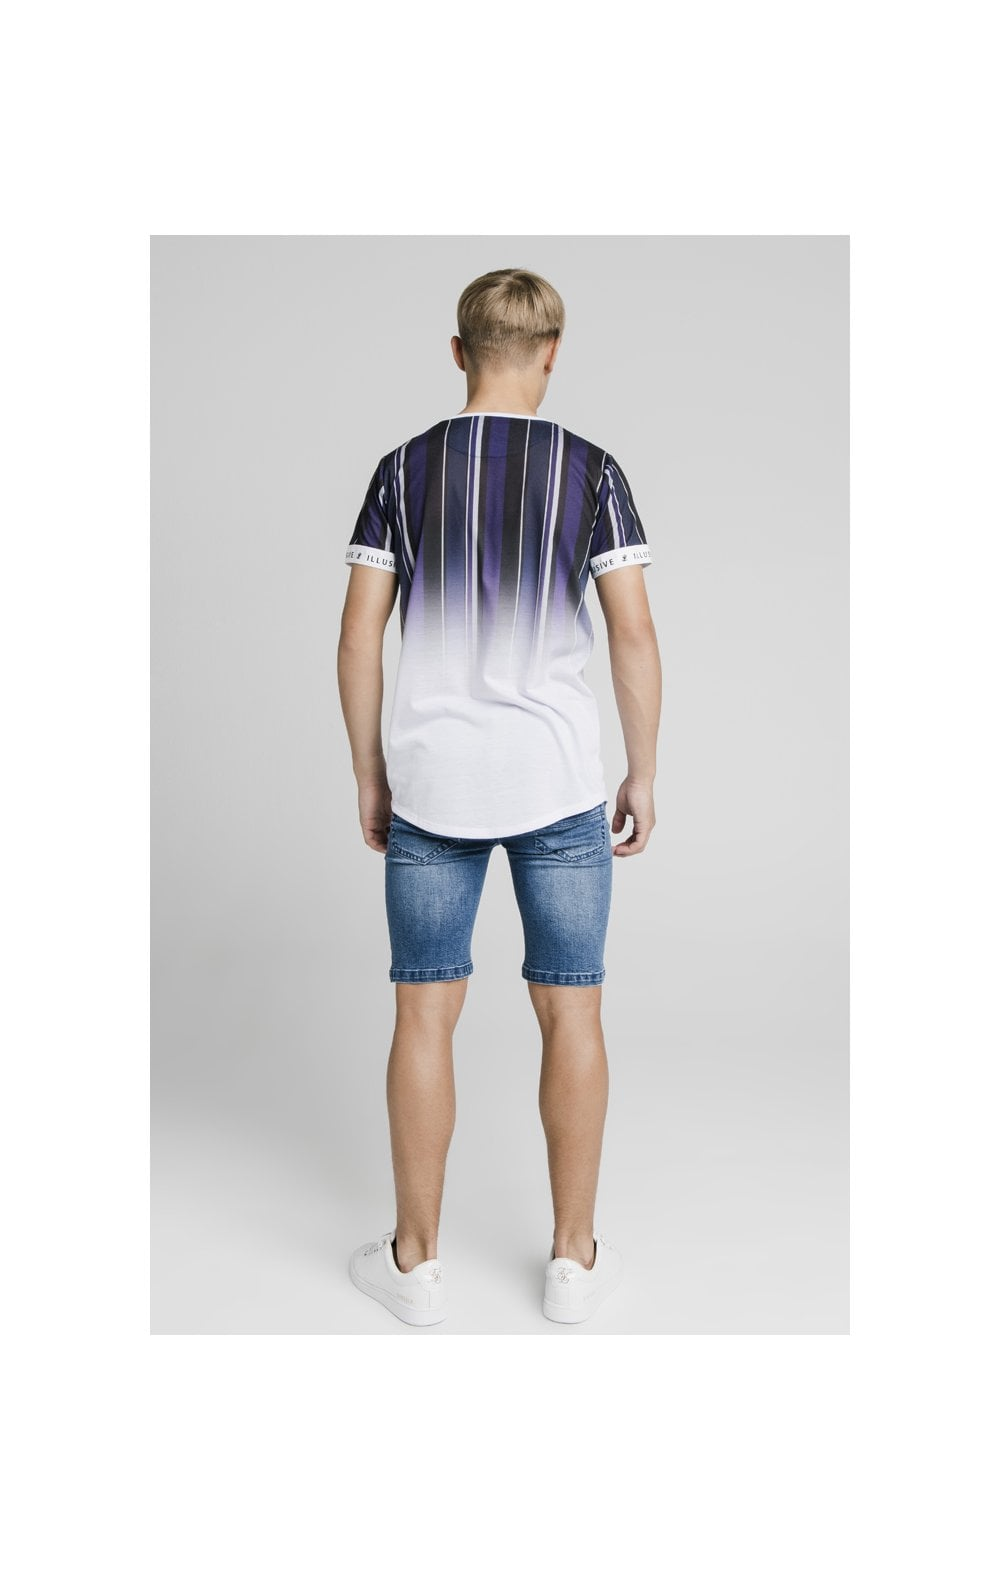 Illusive London Fade Stripe Tech Tee - Navy, Purple, Grey & White (5)